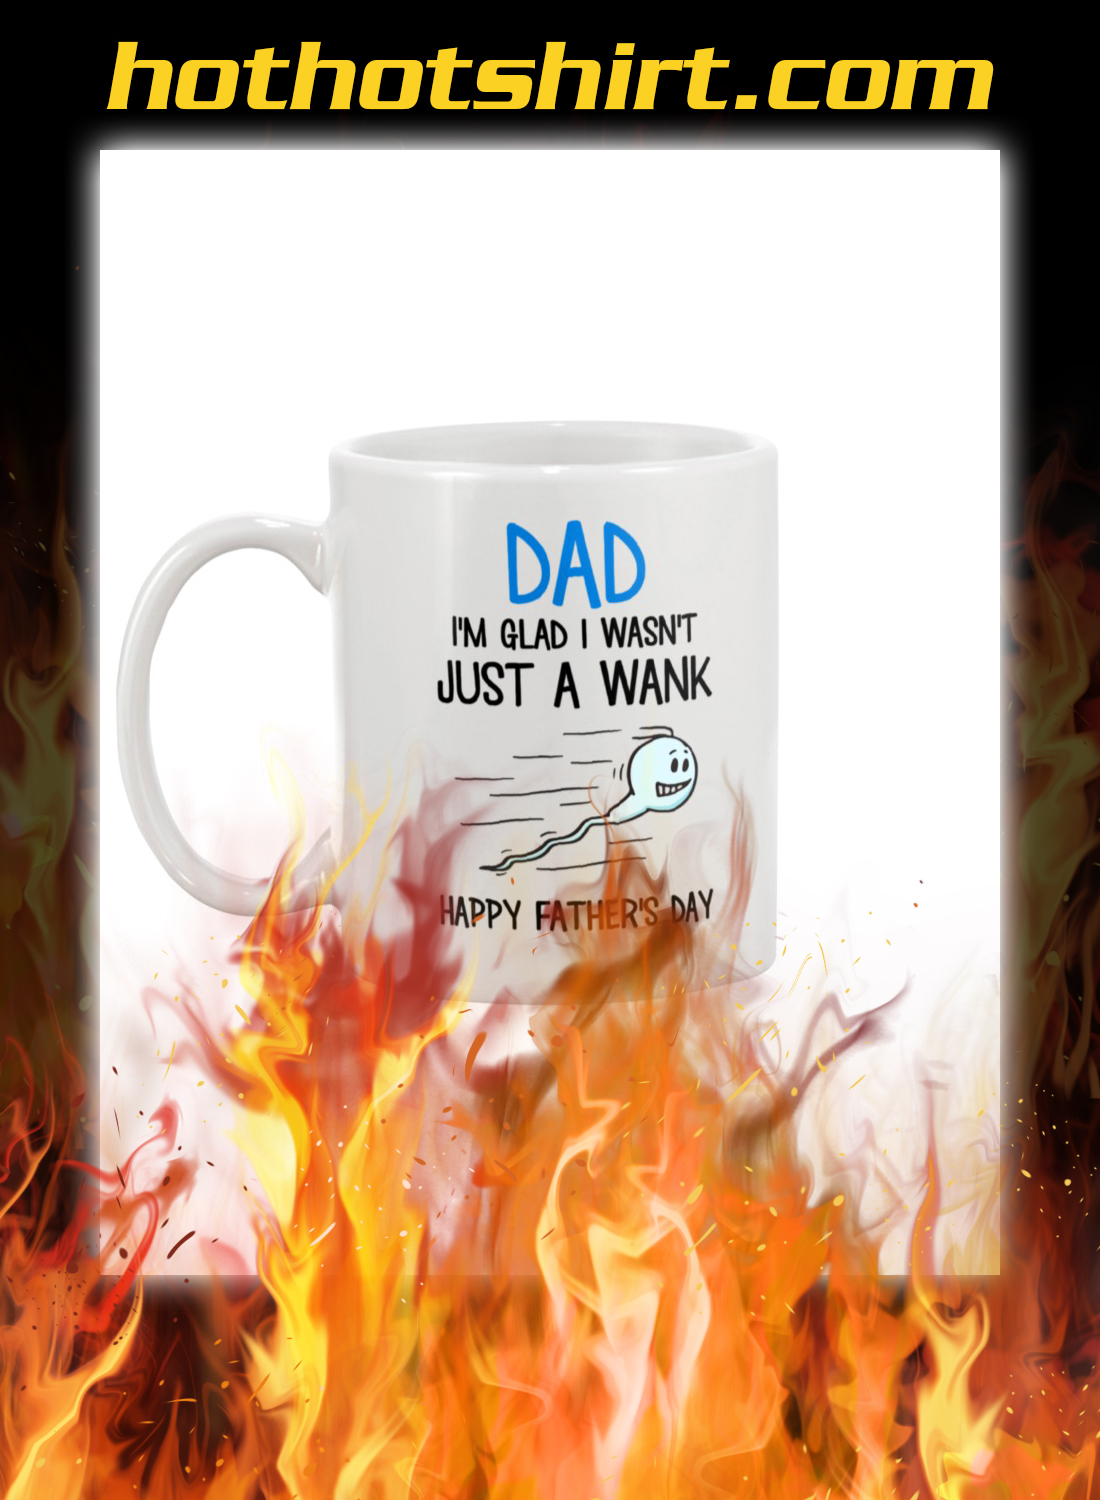 Dad i'm glad i wasn't just a wank happy father's day mug - detail